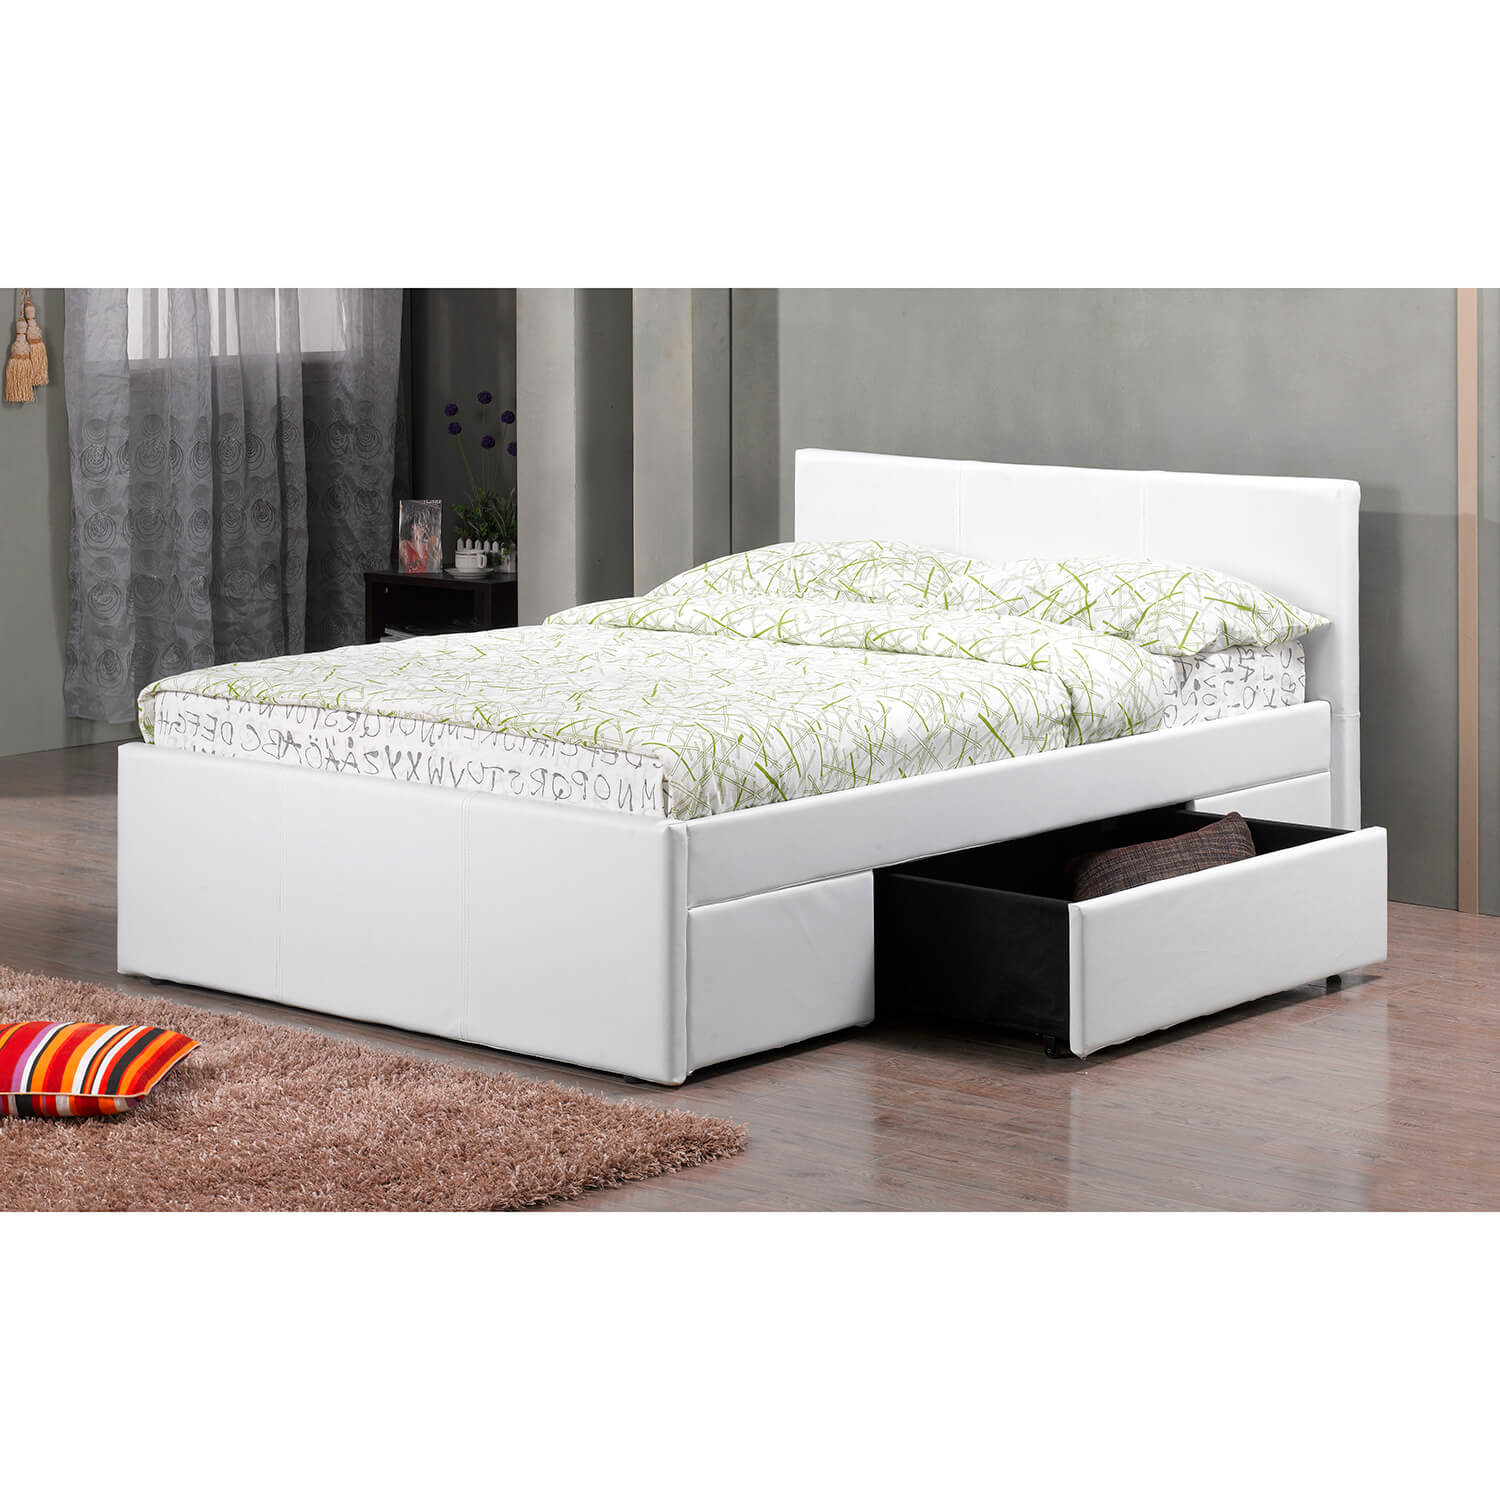 Faith faux leather storage bed frame faux leather bed fads - Single leather bed with drawers ...